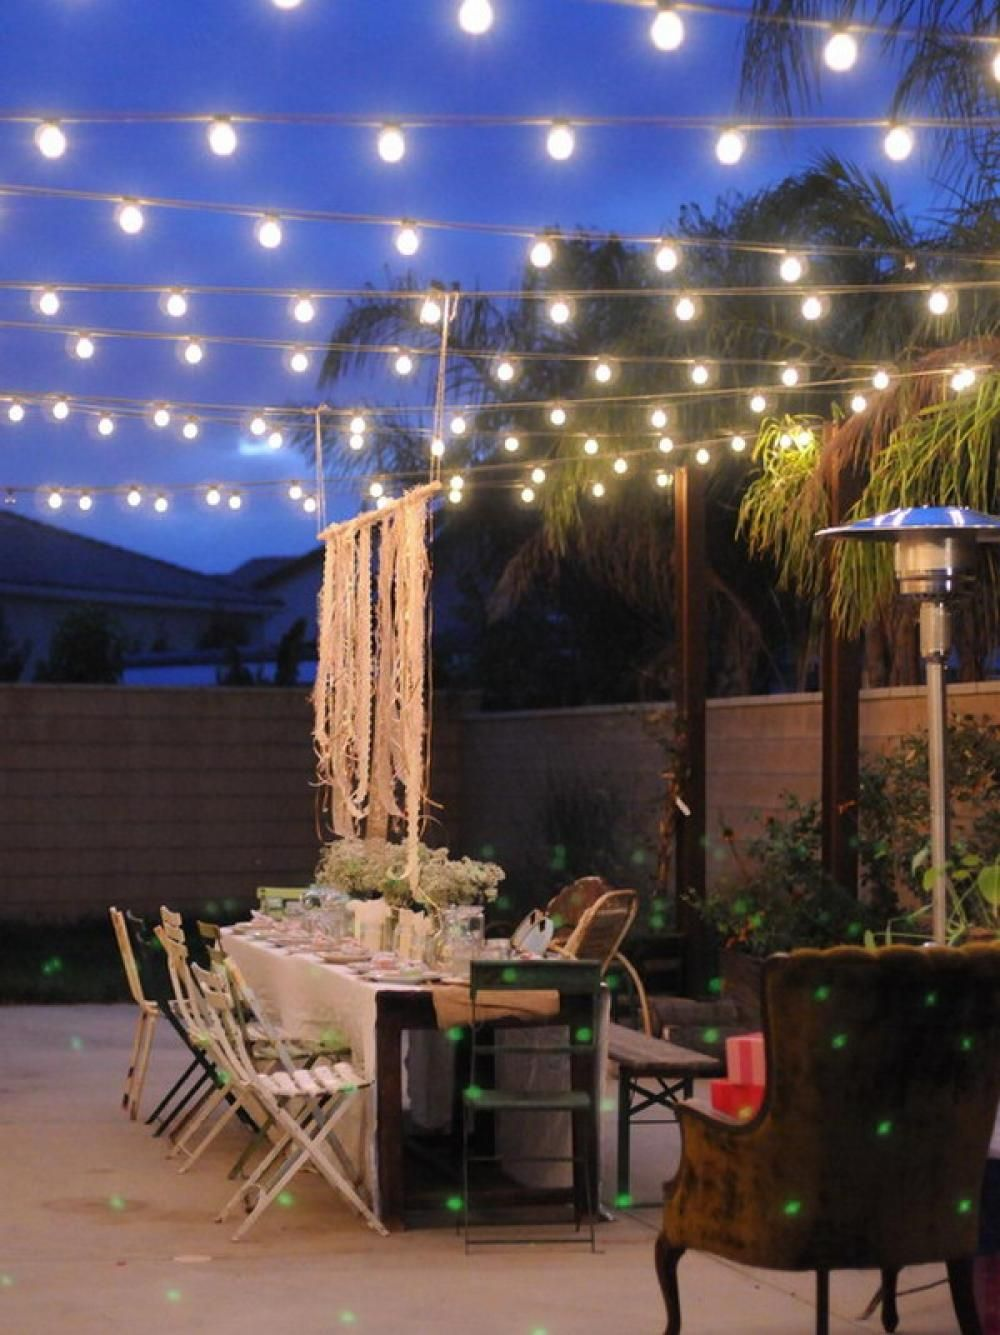 Outdoor Lighting By Hanging White Lights From Decks And Patios - Outdoor lighting patio ideas hang white icicle lights to create magical outdoor lighting this idea works